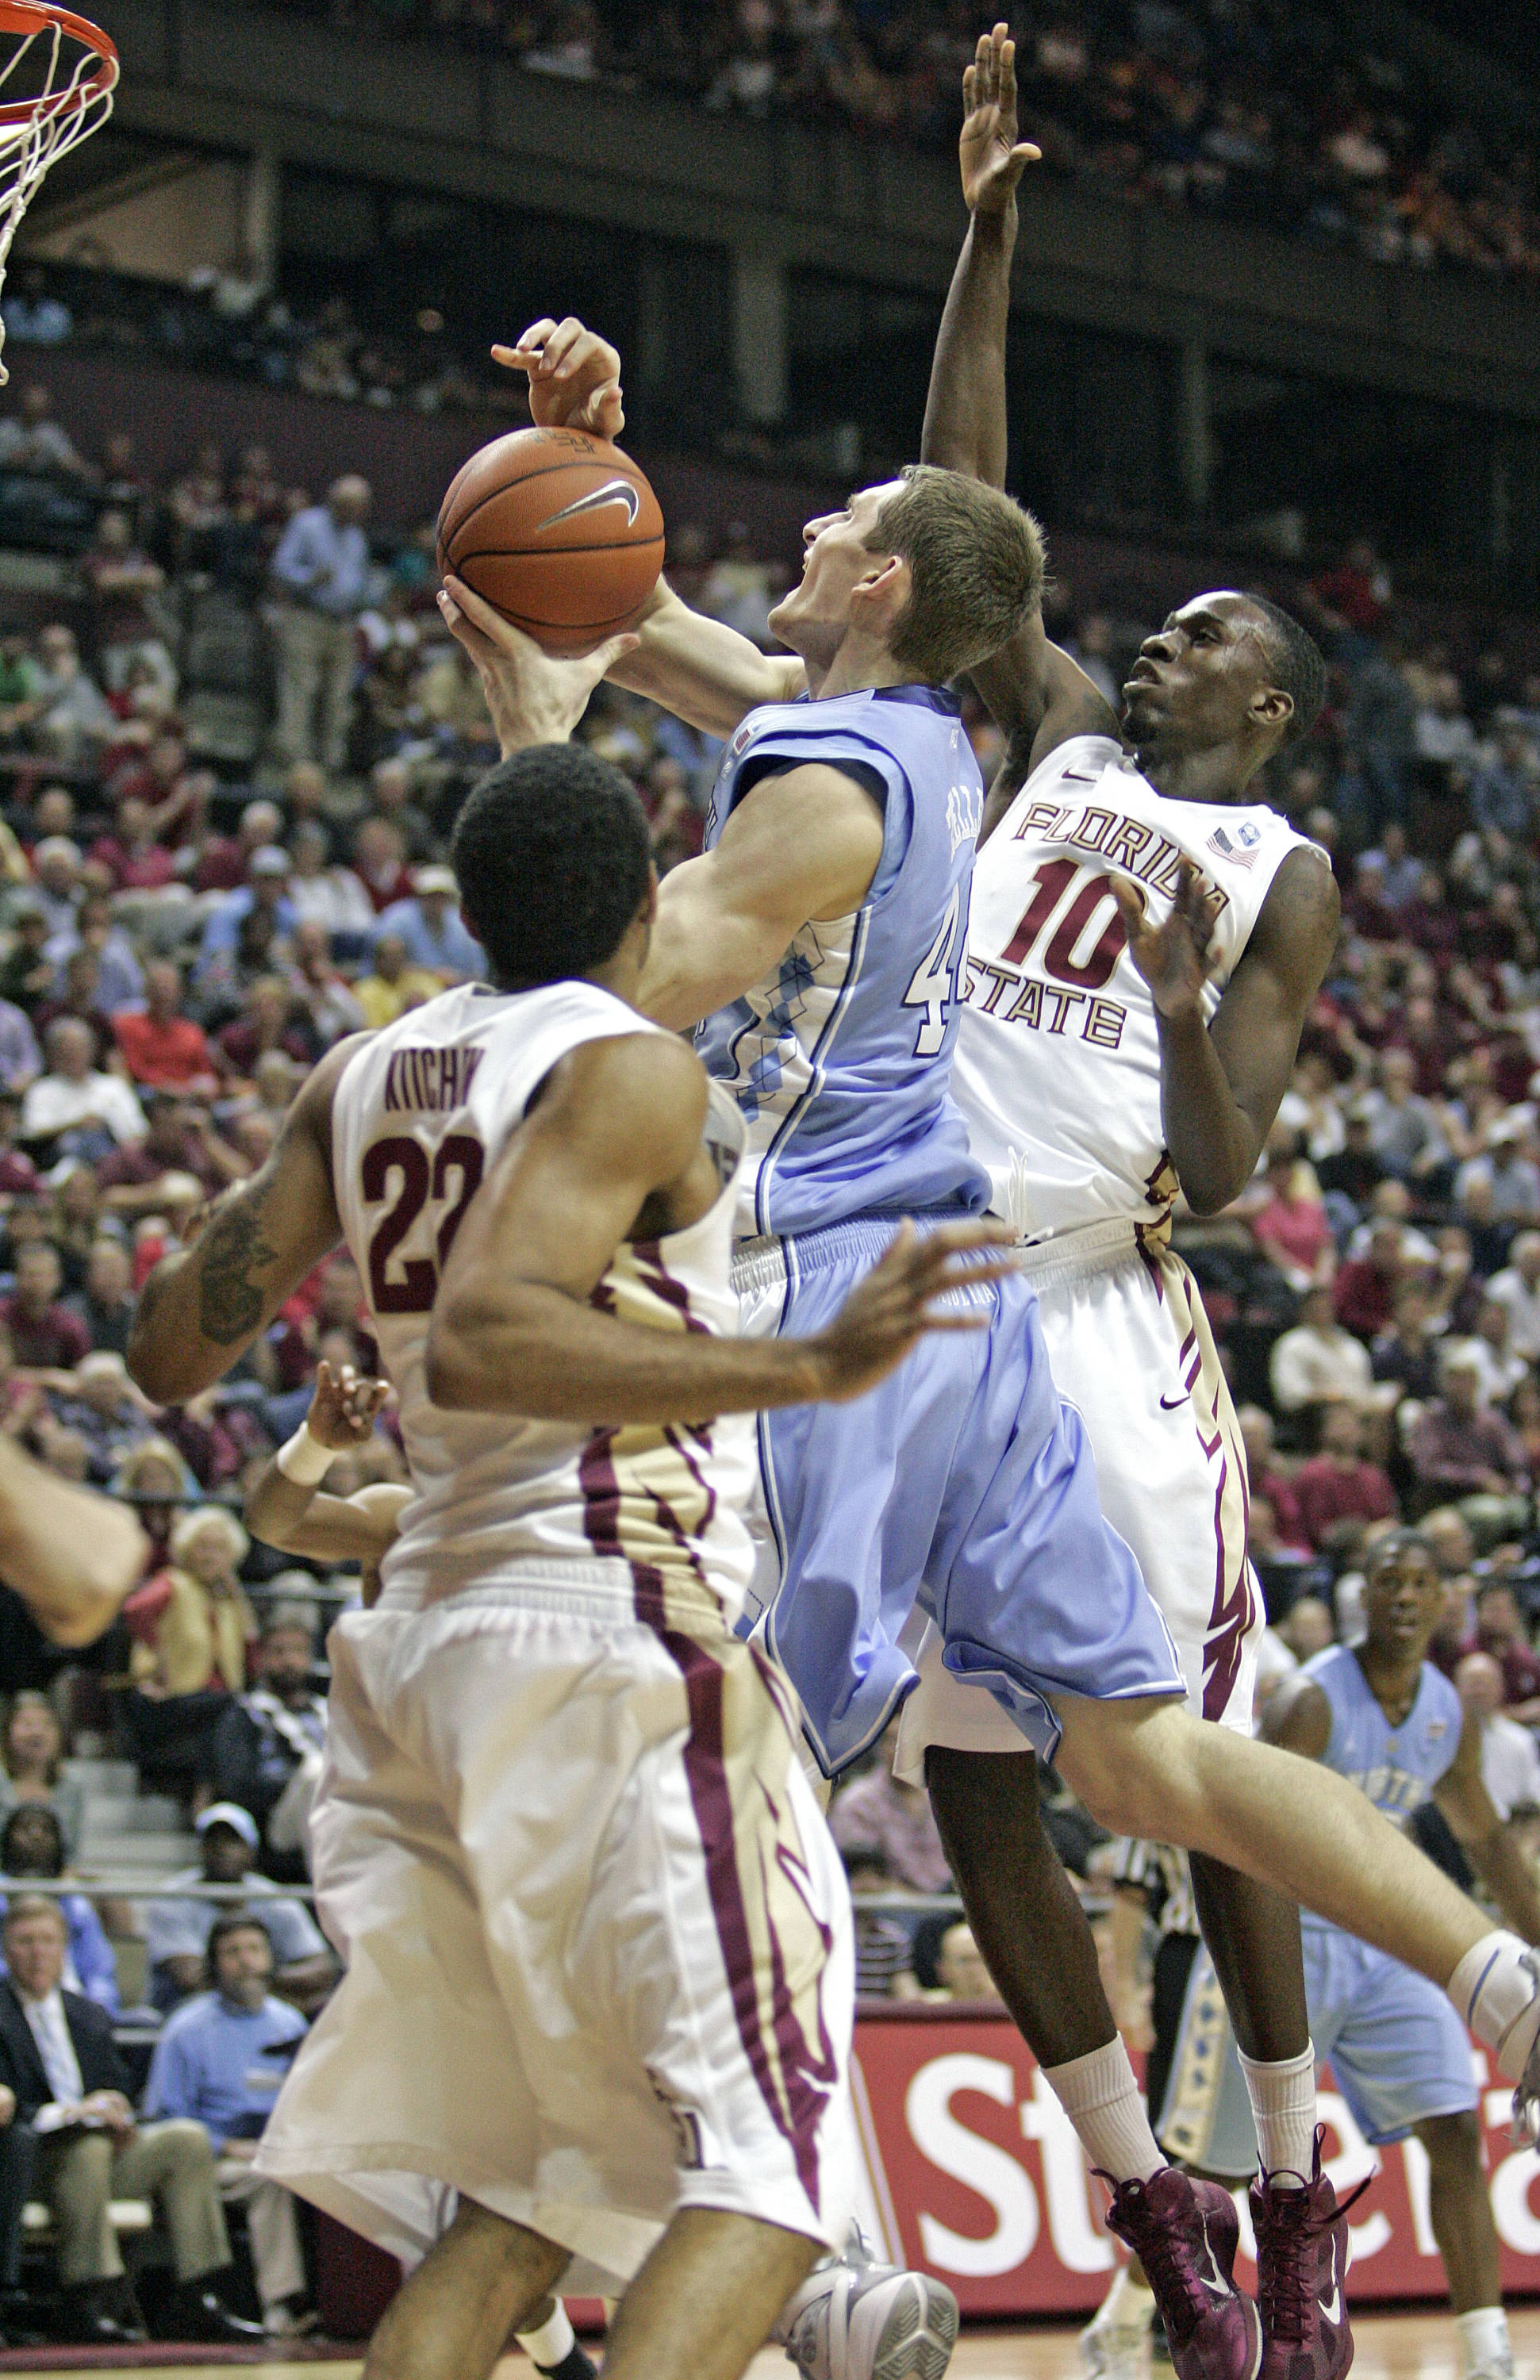 Florida State's Derwin Kitchen and Okaro White clog the lane against a driving Tyler Zeller of North Carolina.